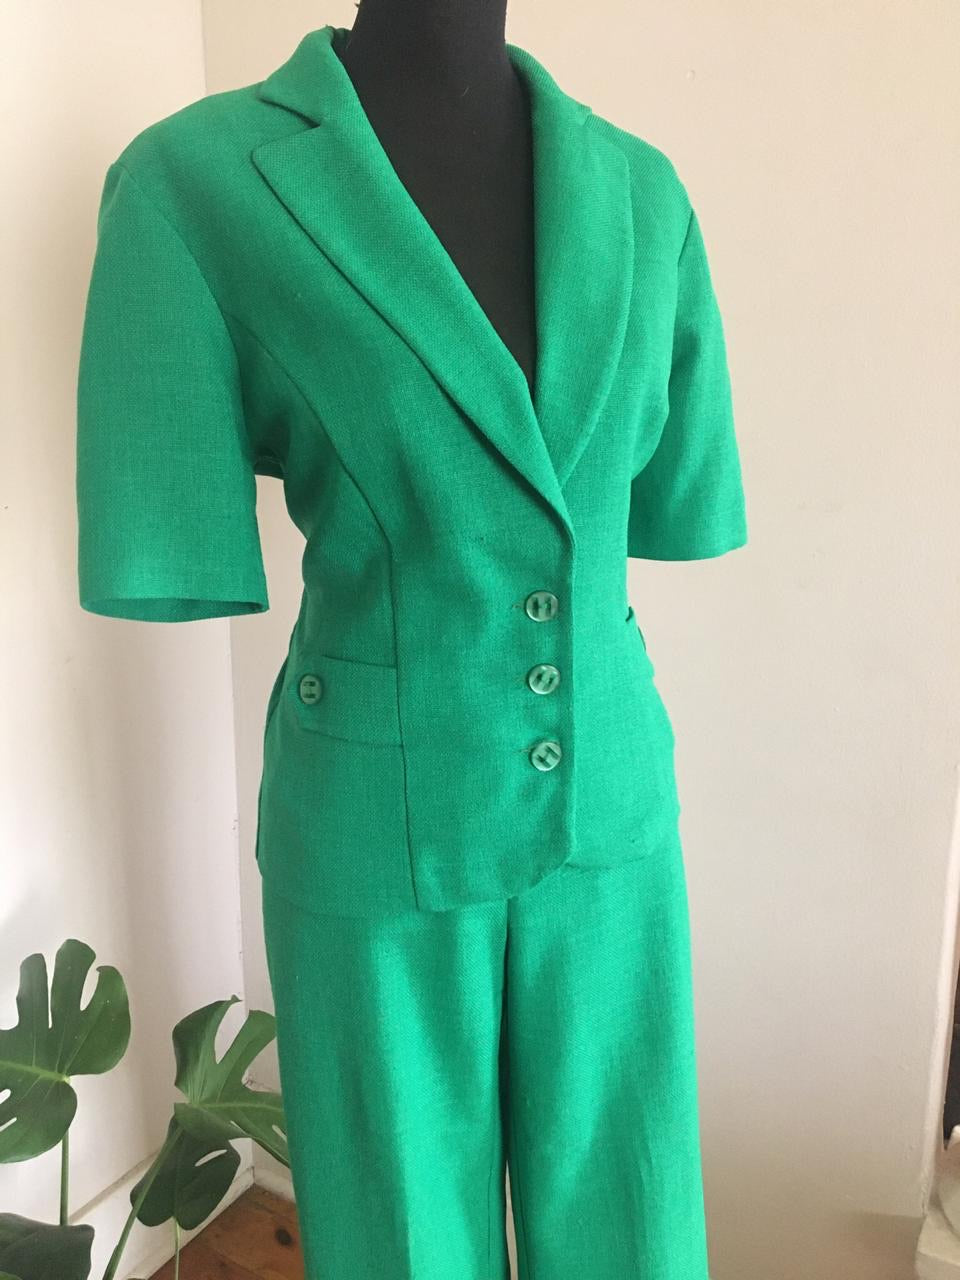 Bright Green suit